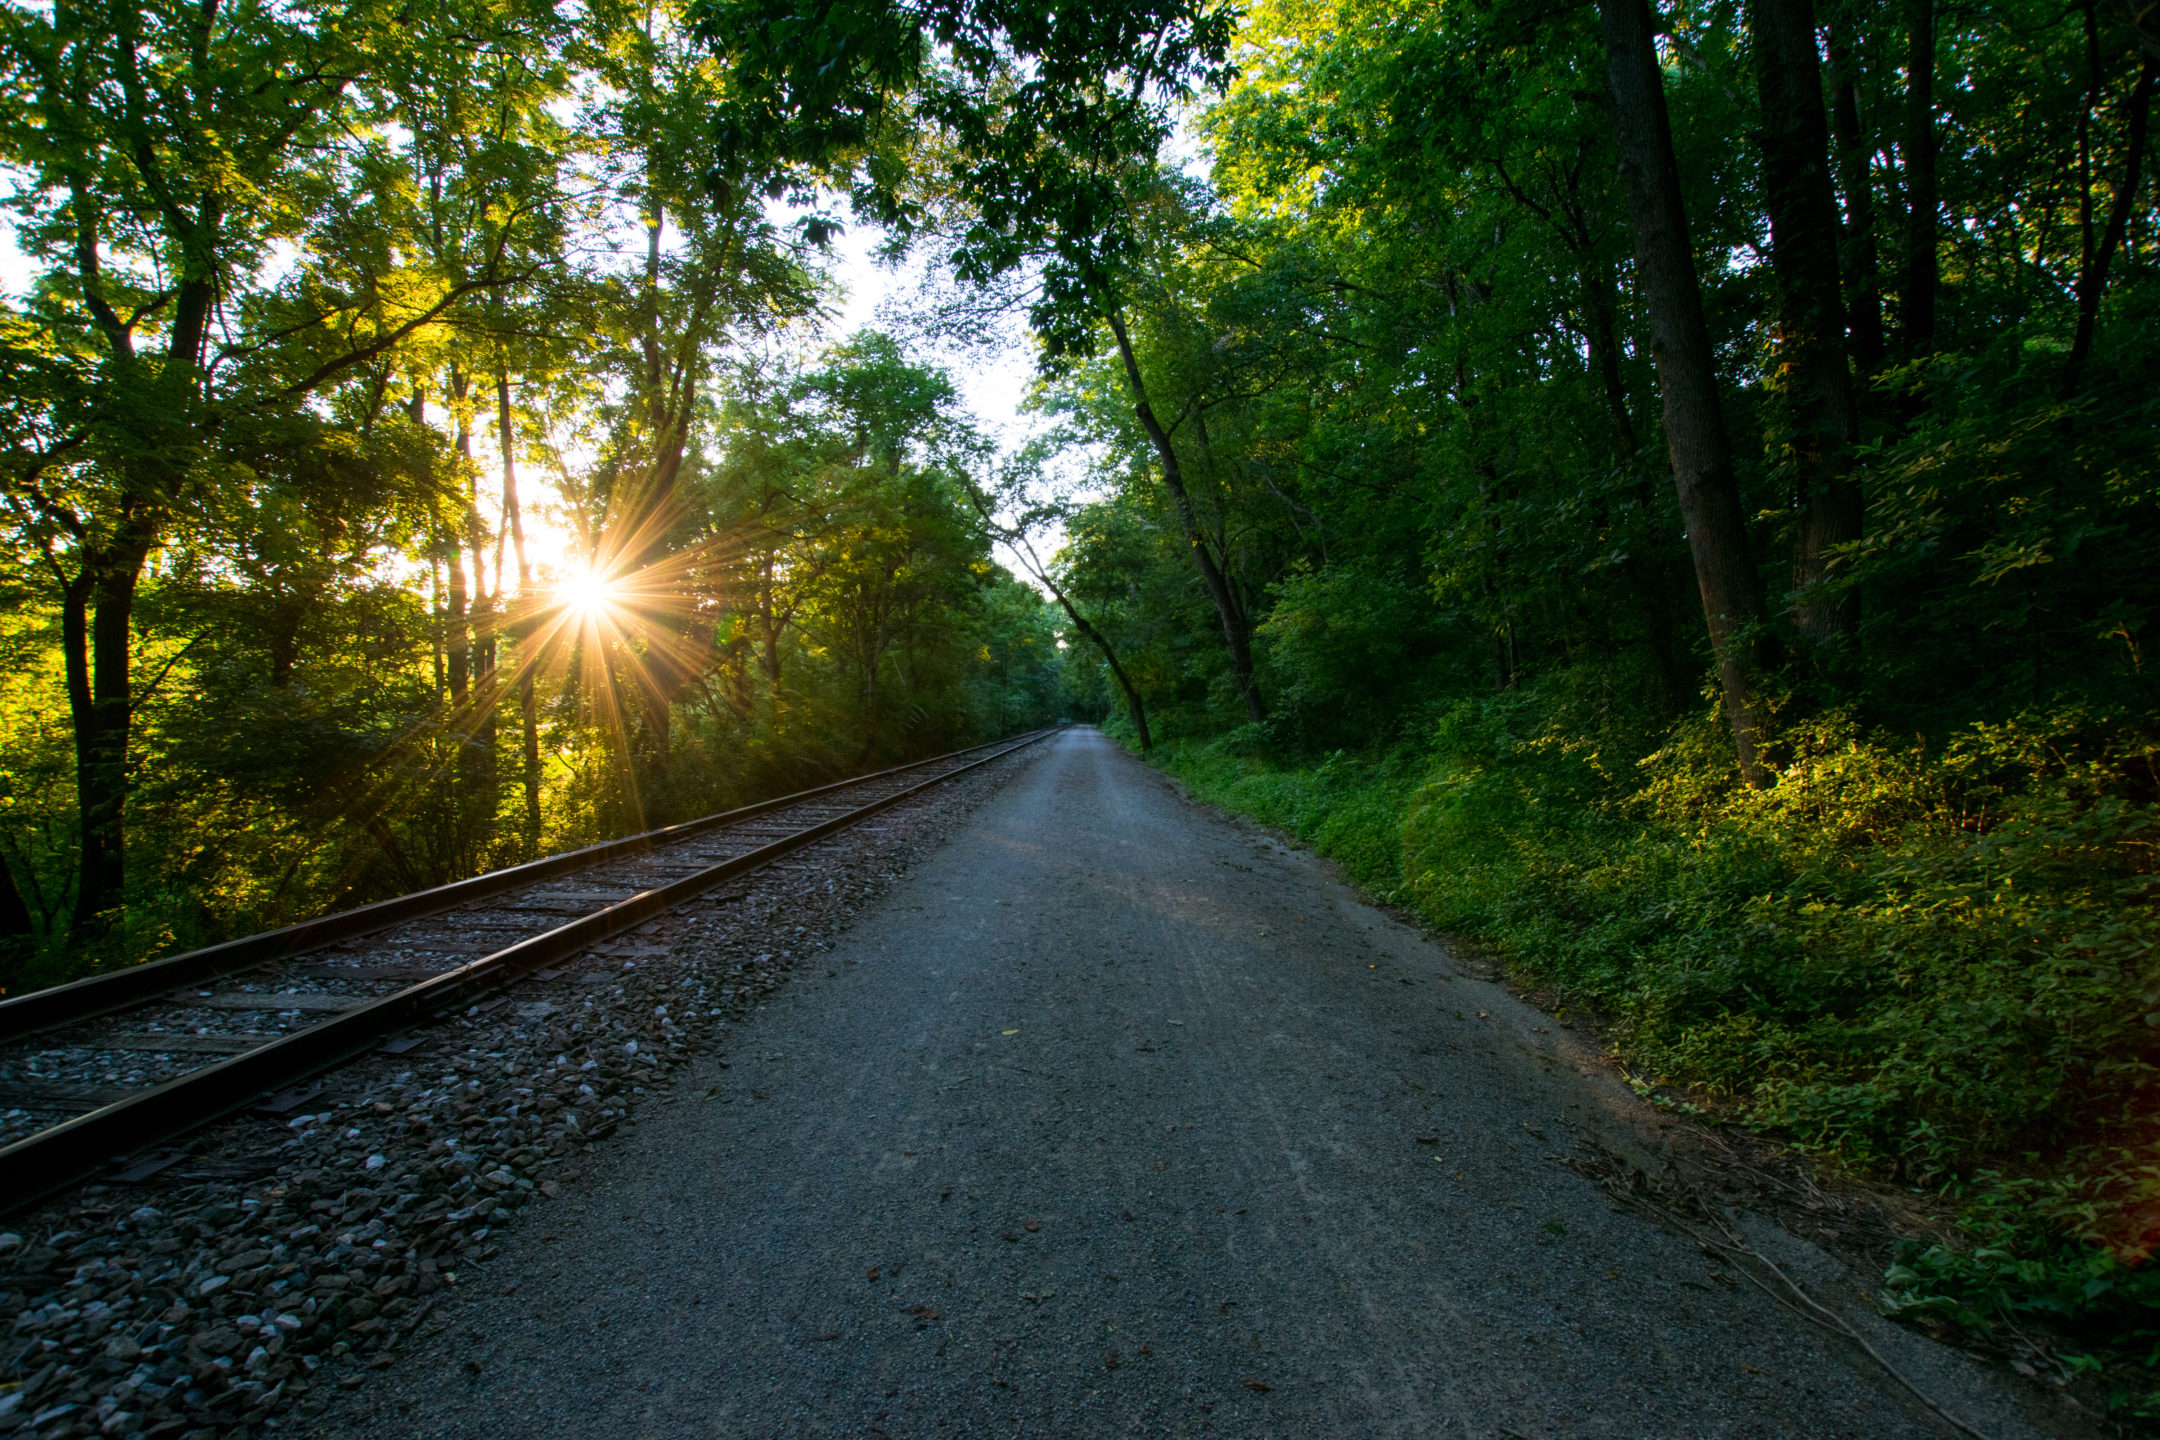 road and train tracks going through wooded area